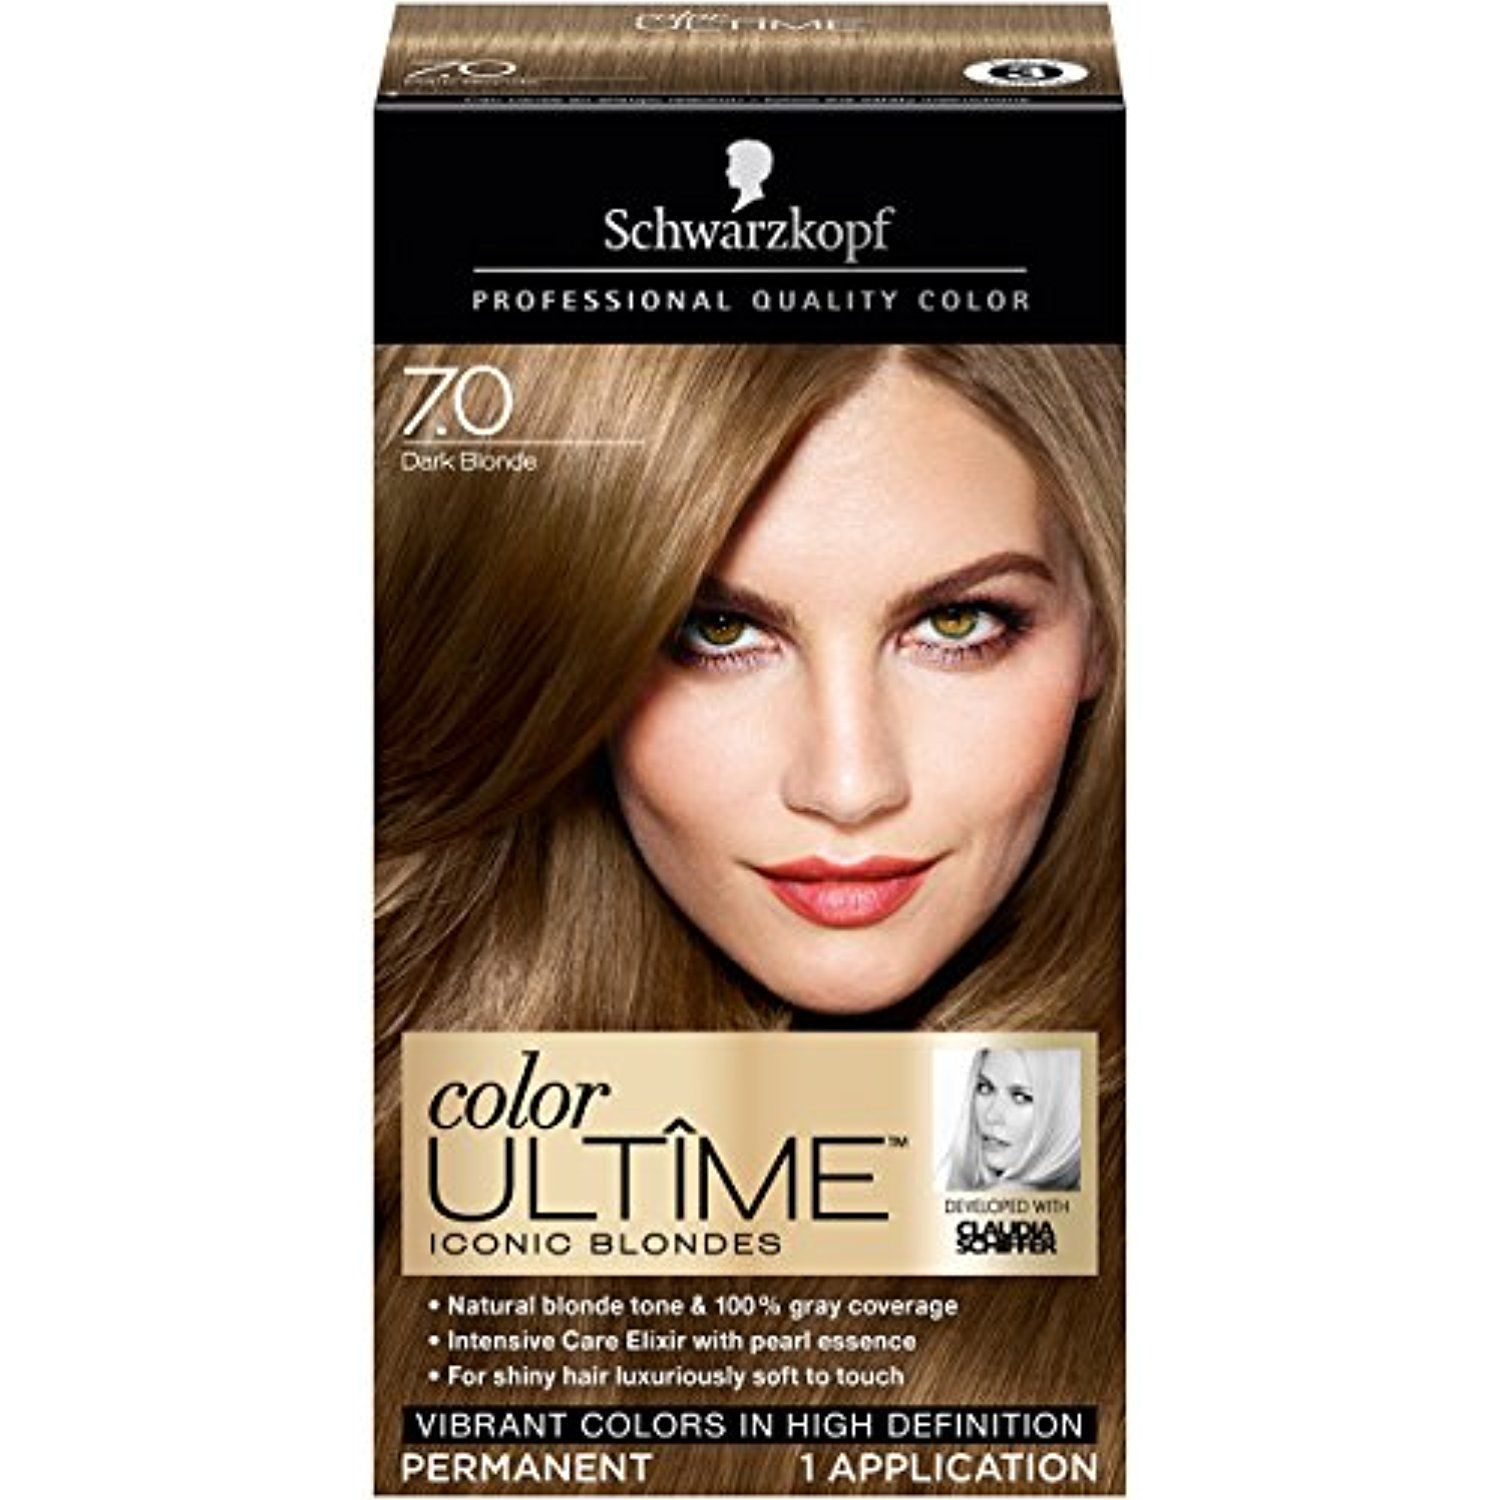 Schwarzkopf Color Ultime Iconic Blondes Hair Coloring Kit 7 0